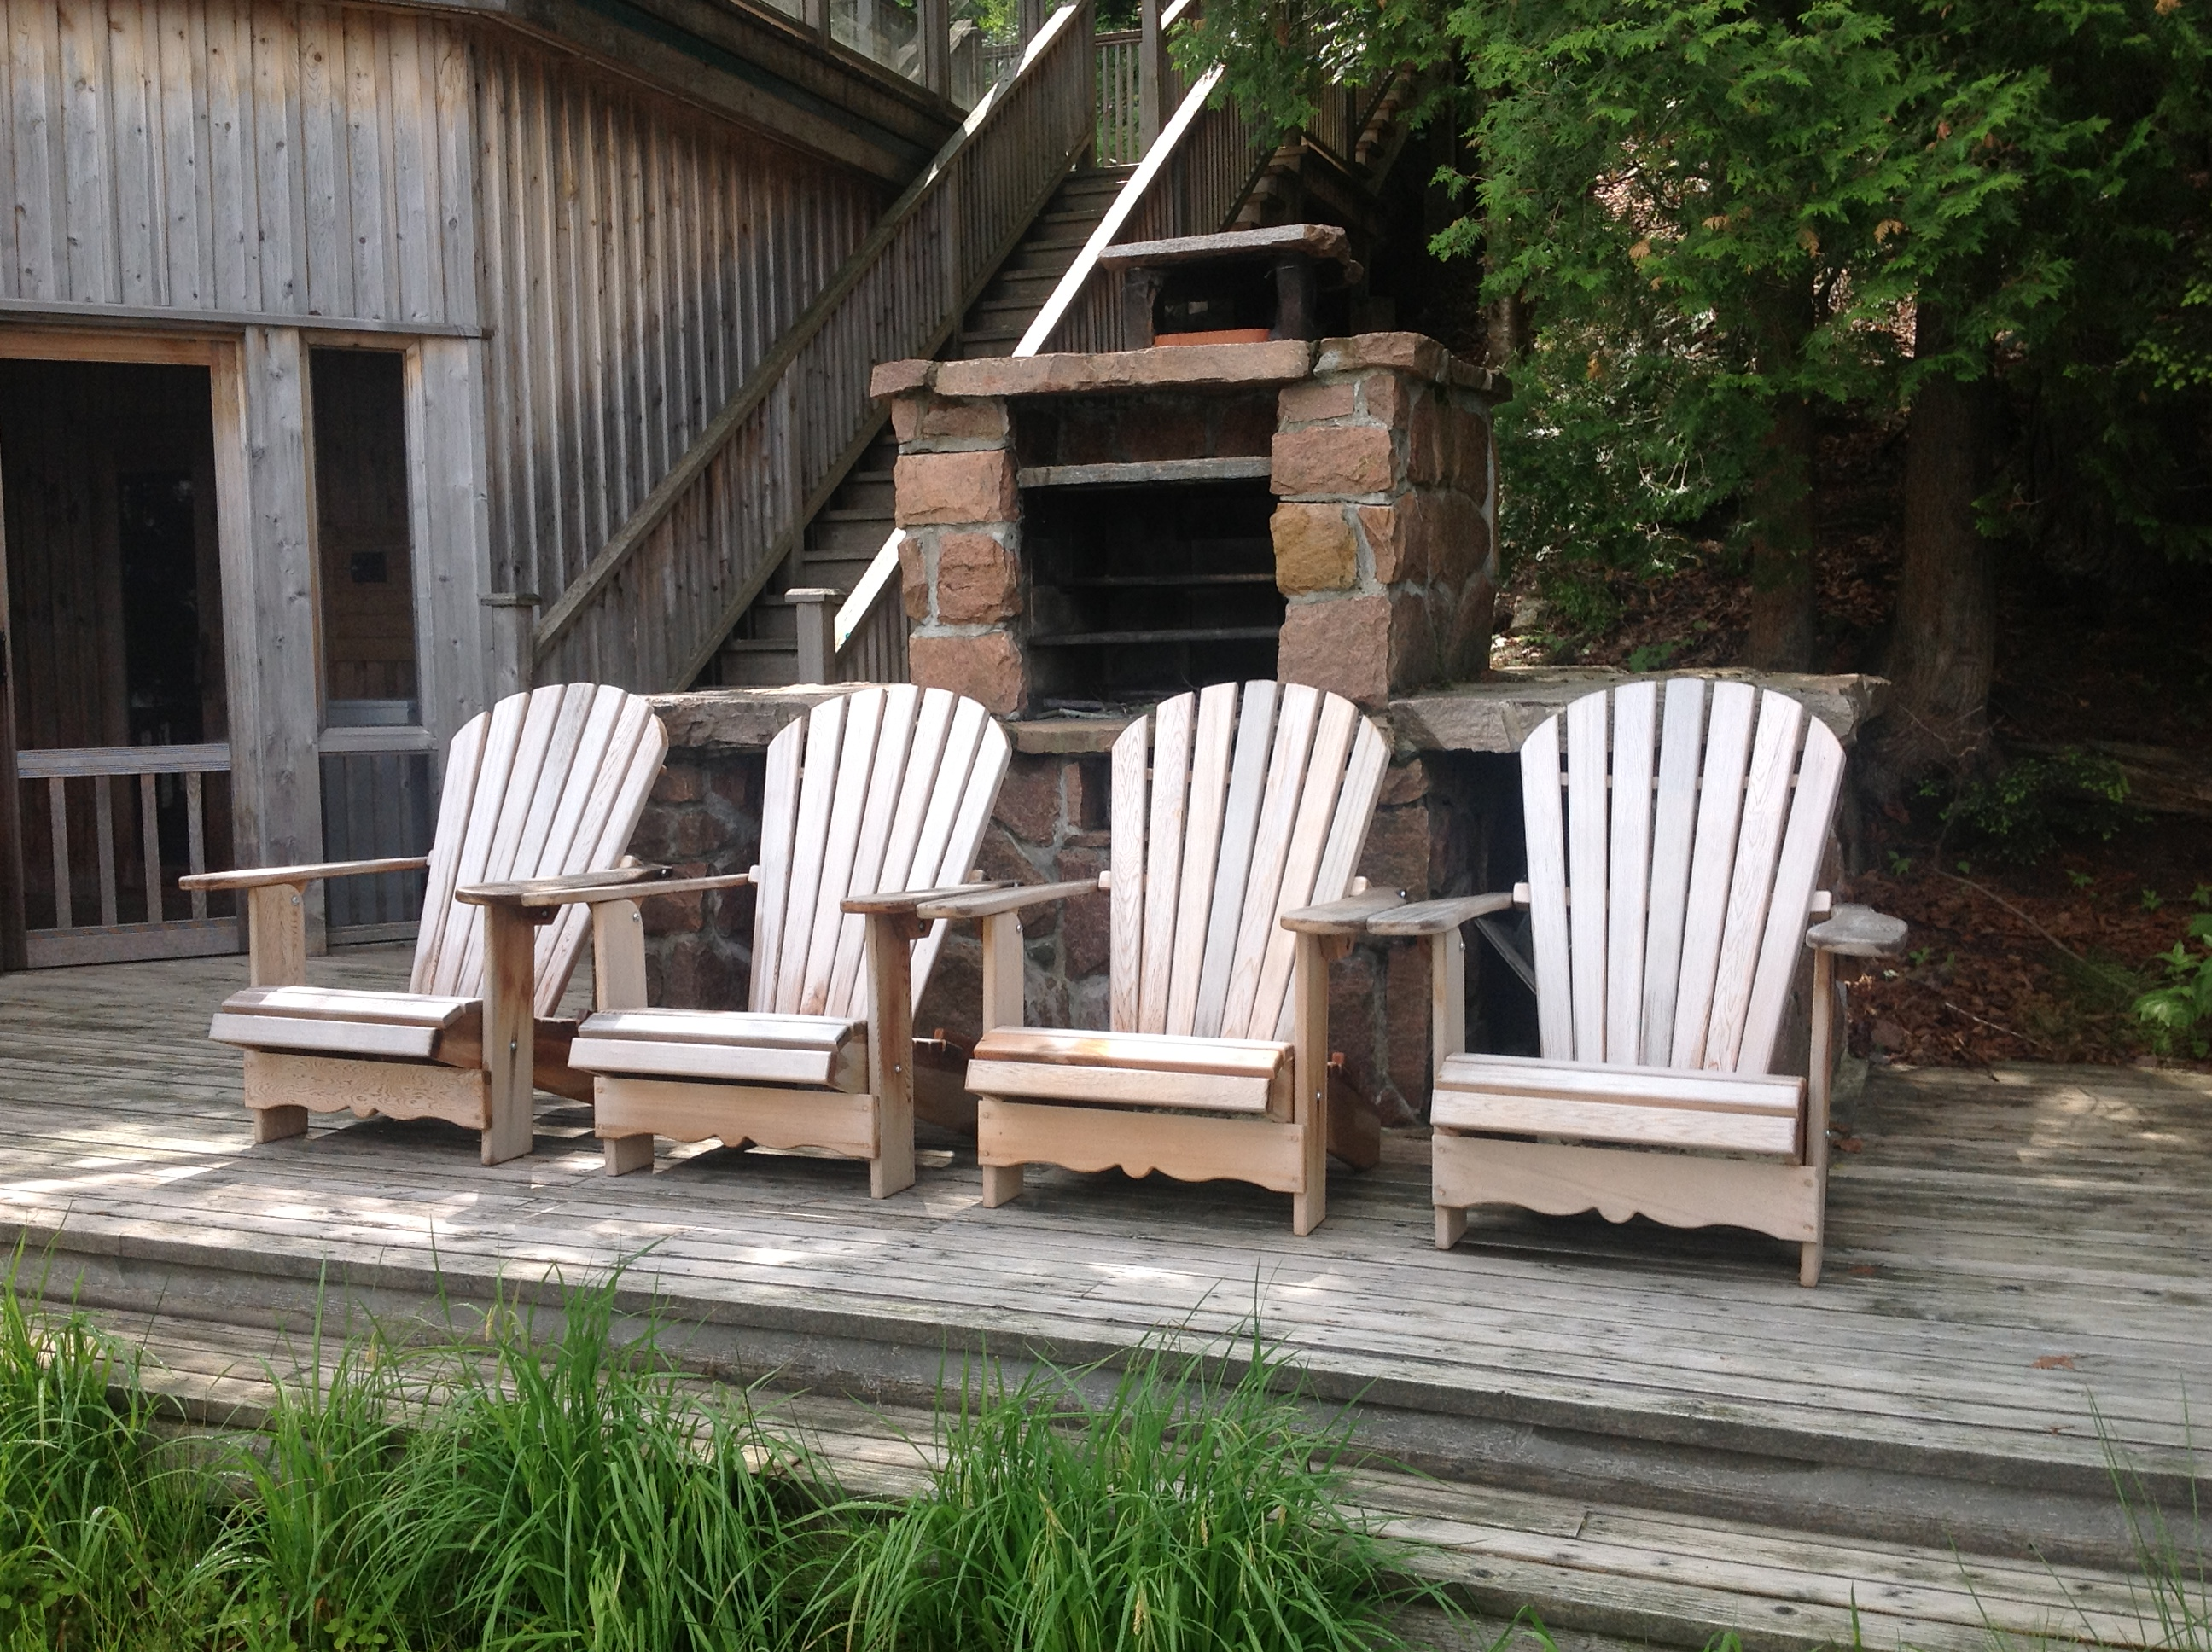 Muskoka chairs on Lake Rosseau